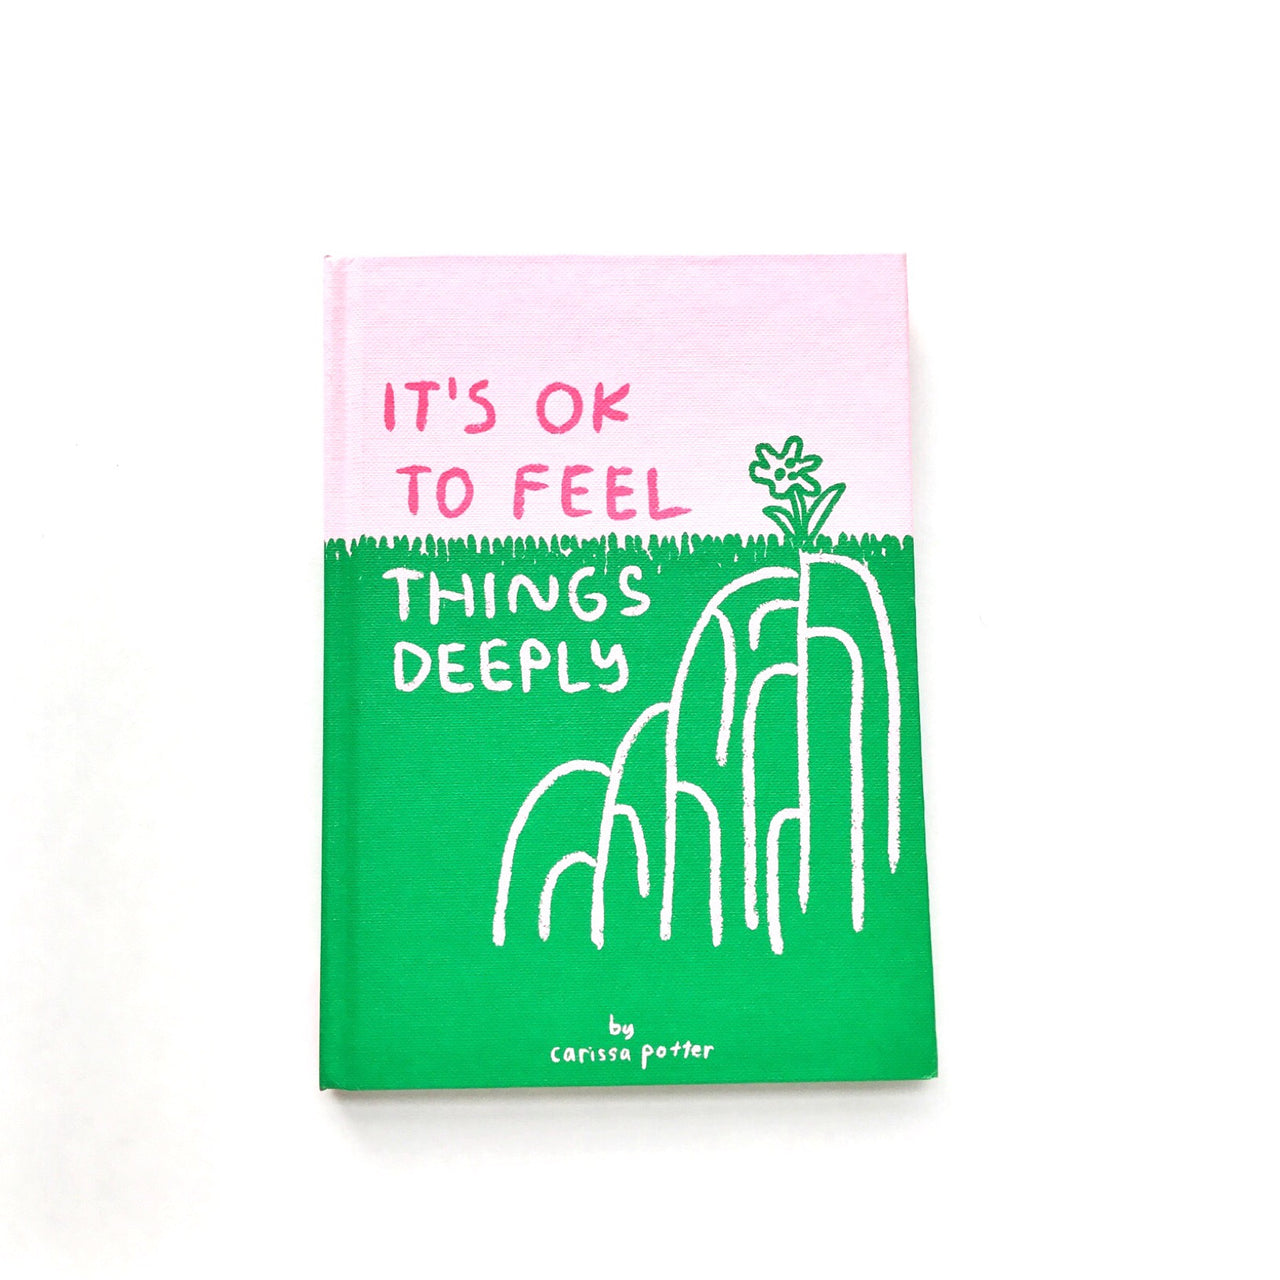 it's ok to feel things deeply